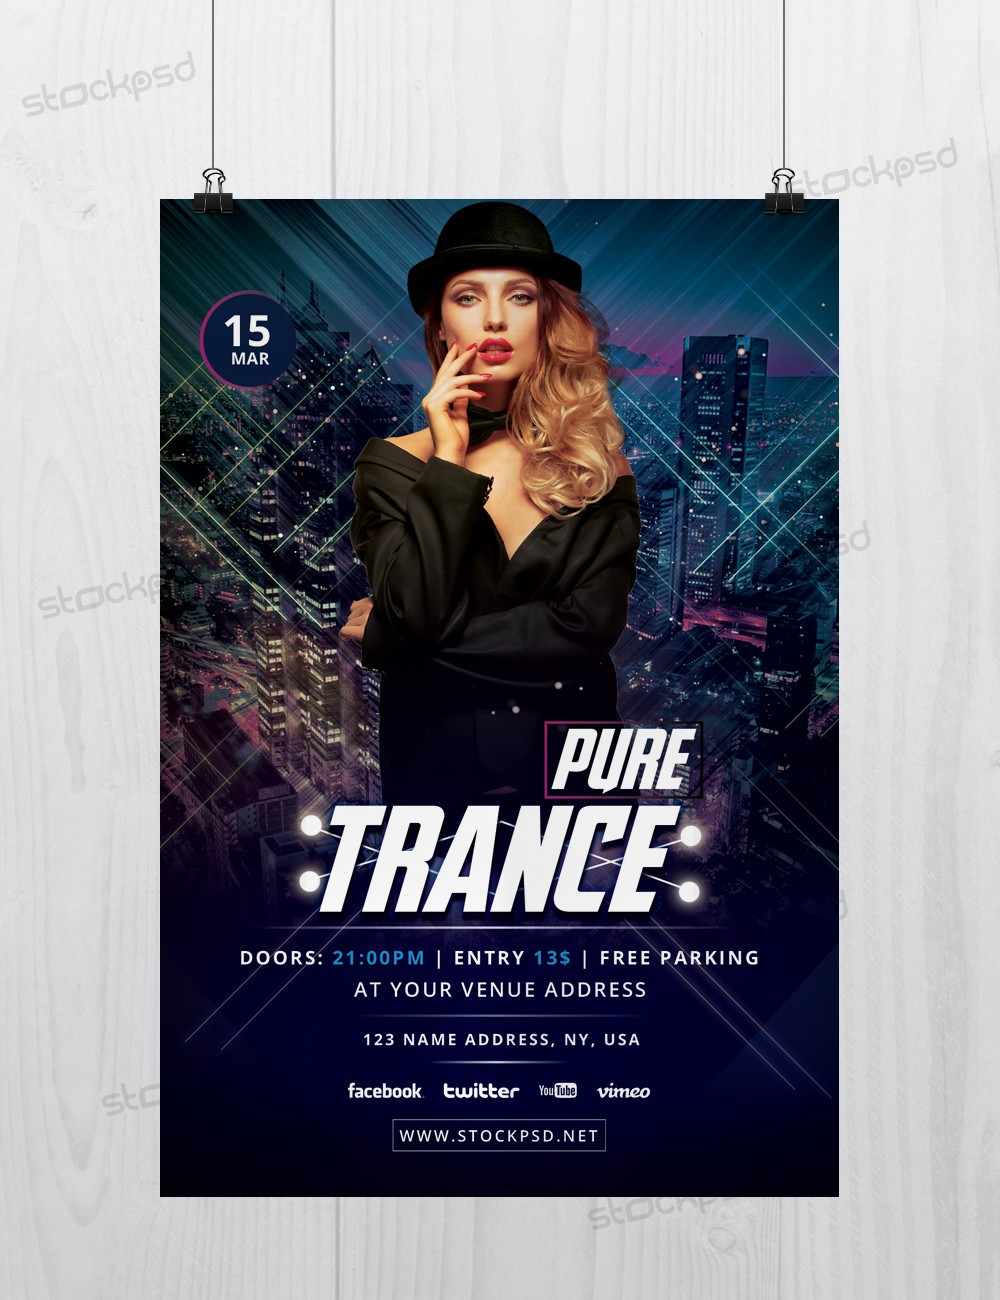 Pure Trance Download Free Photoshop Flyer Template